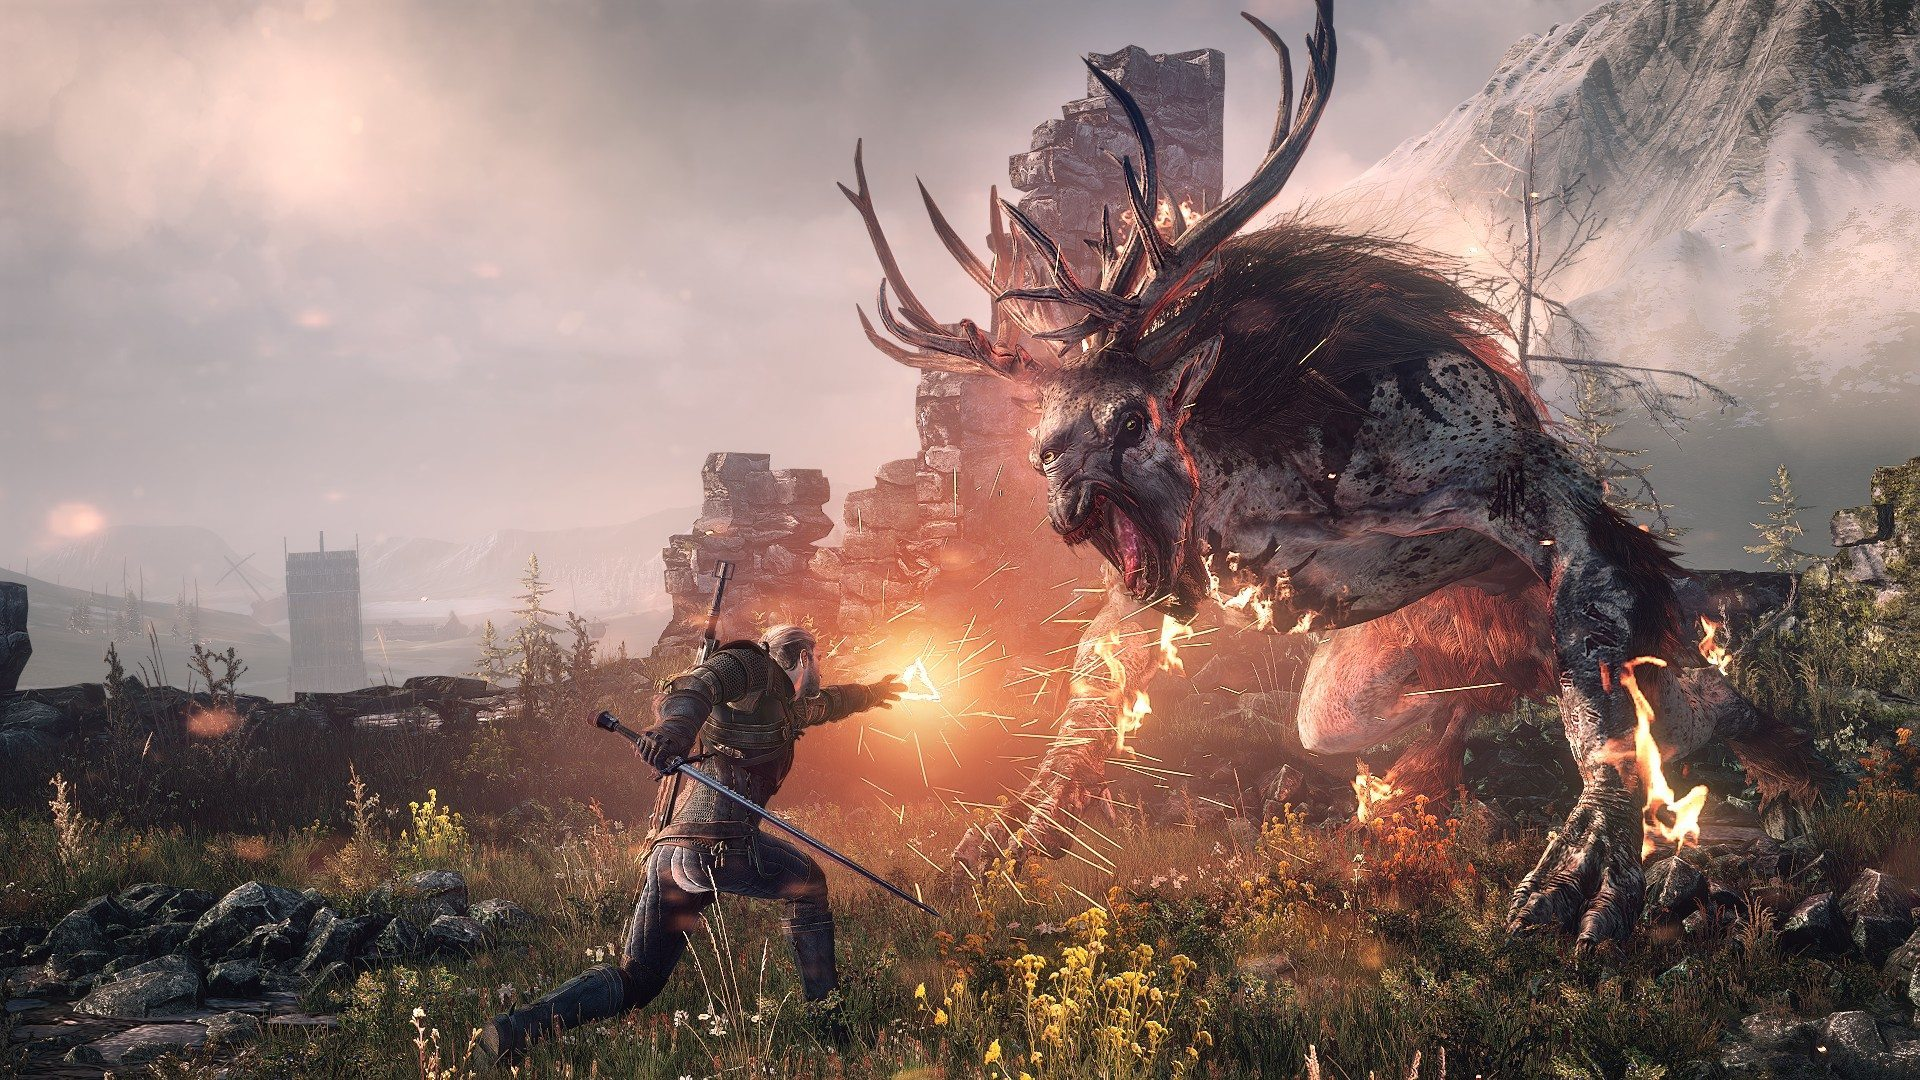 The Witcher 3: Wild Hunt might just be one of the best video games of all time.